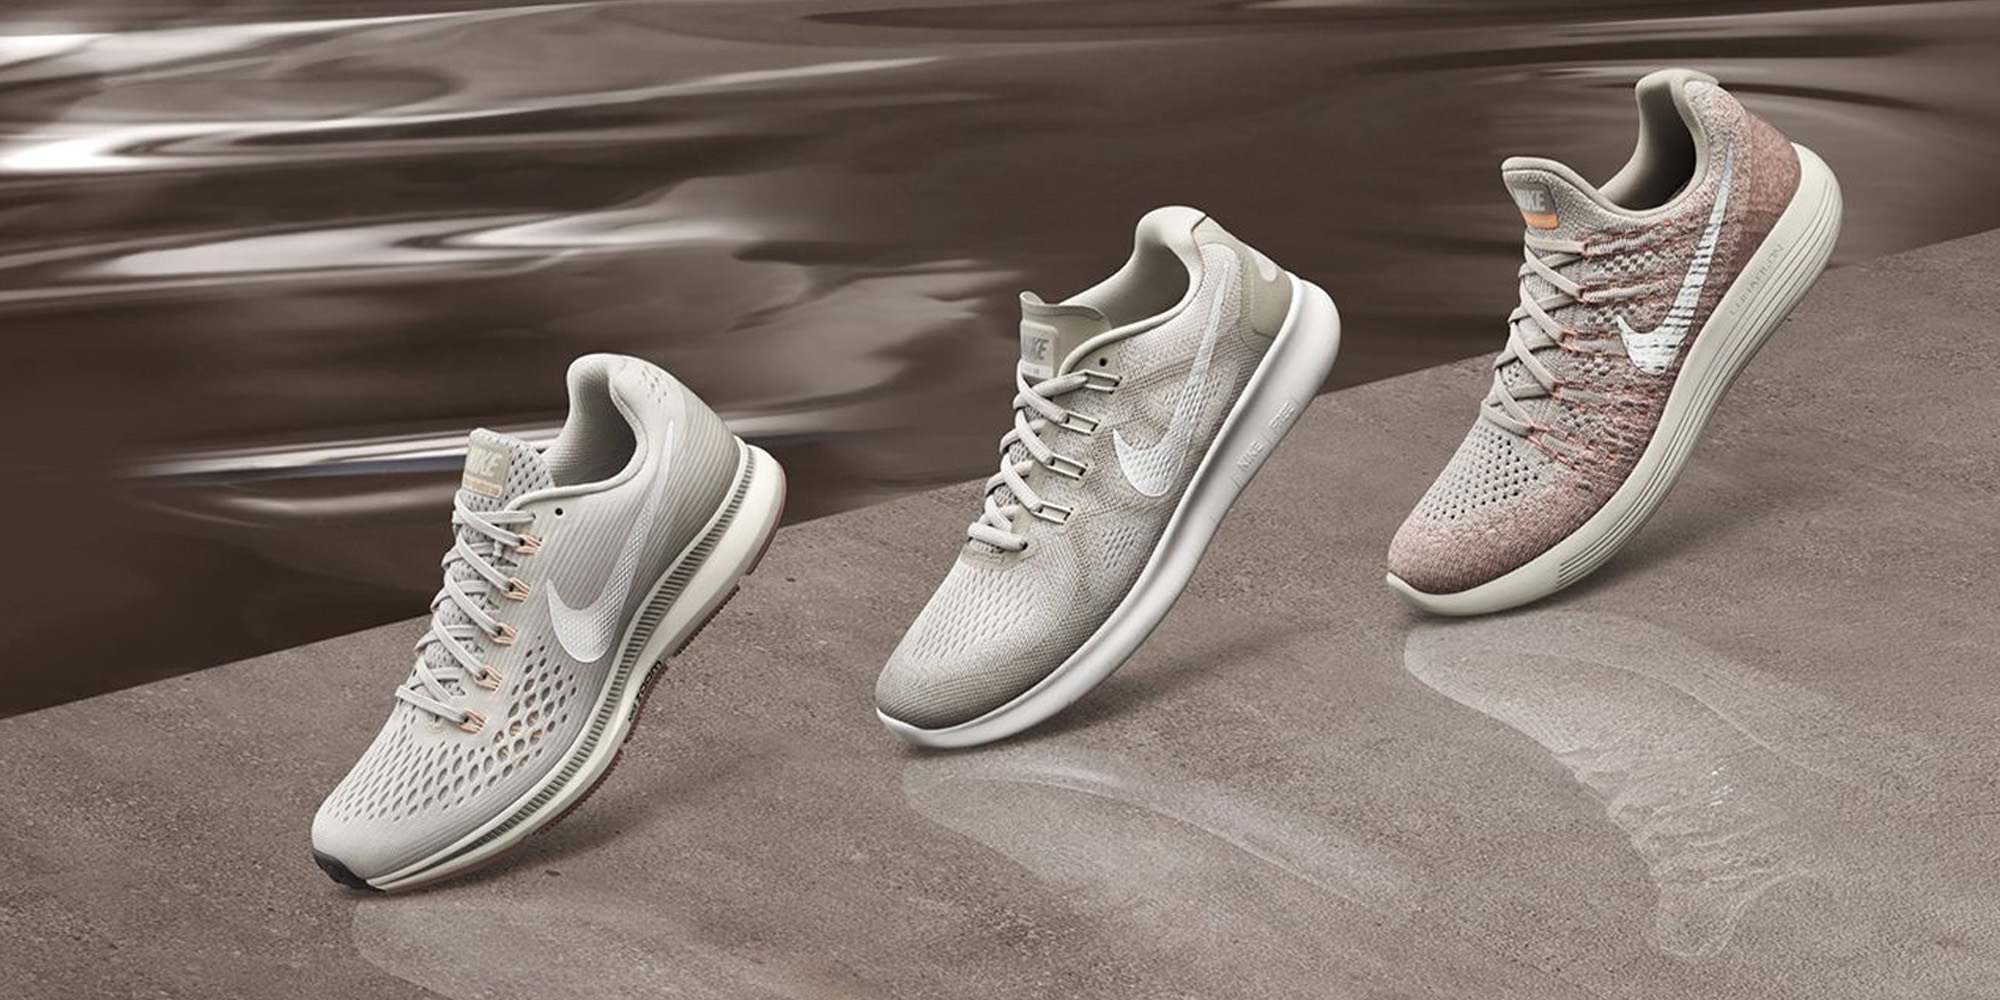 Zappos Nike Sale offers thousands of items at up to 75% off